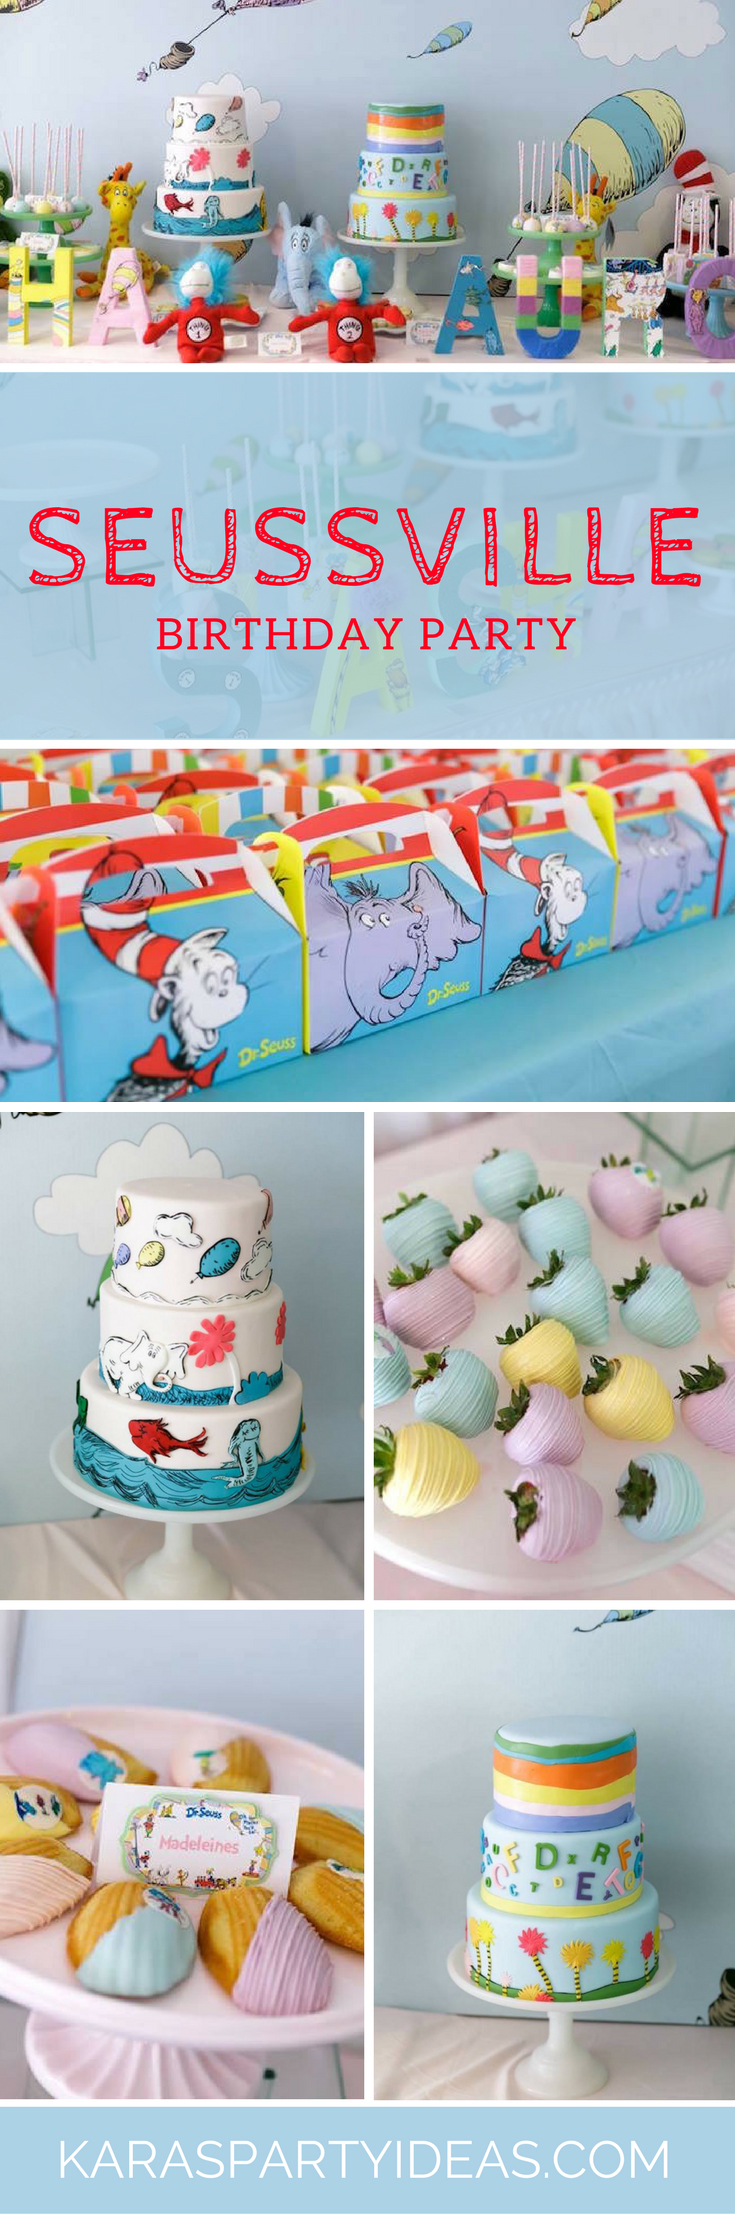 Seussville Birthday Party via Kara's Party Ideas - KarasPartyIdeas.com